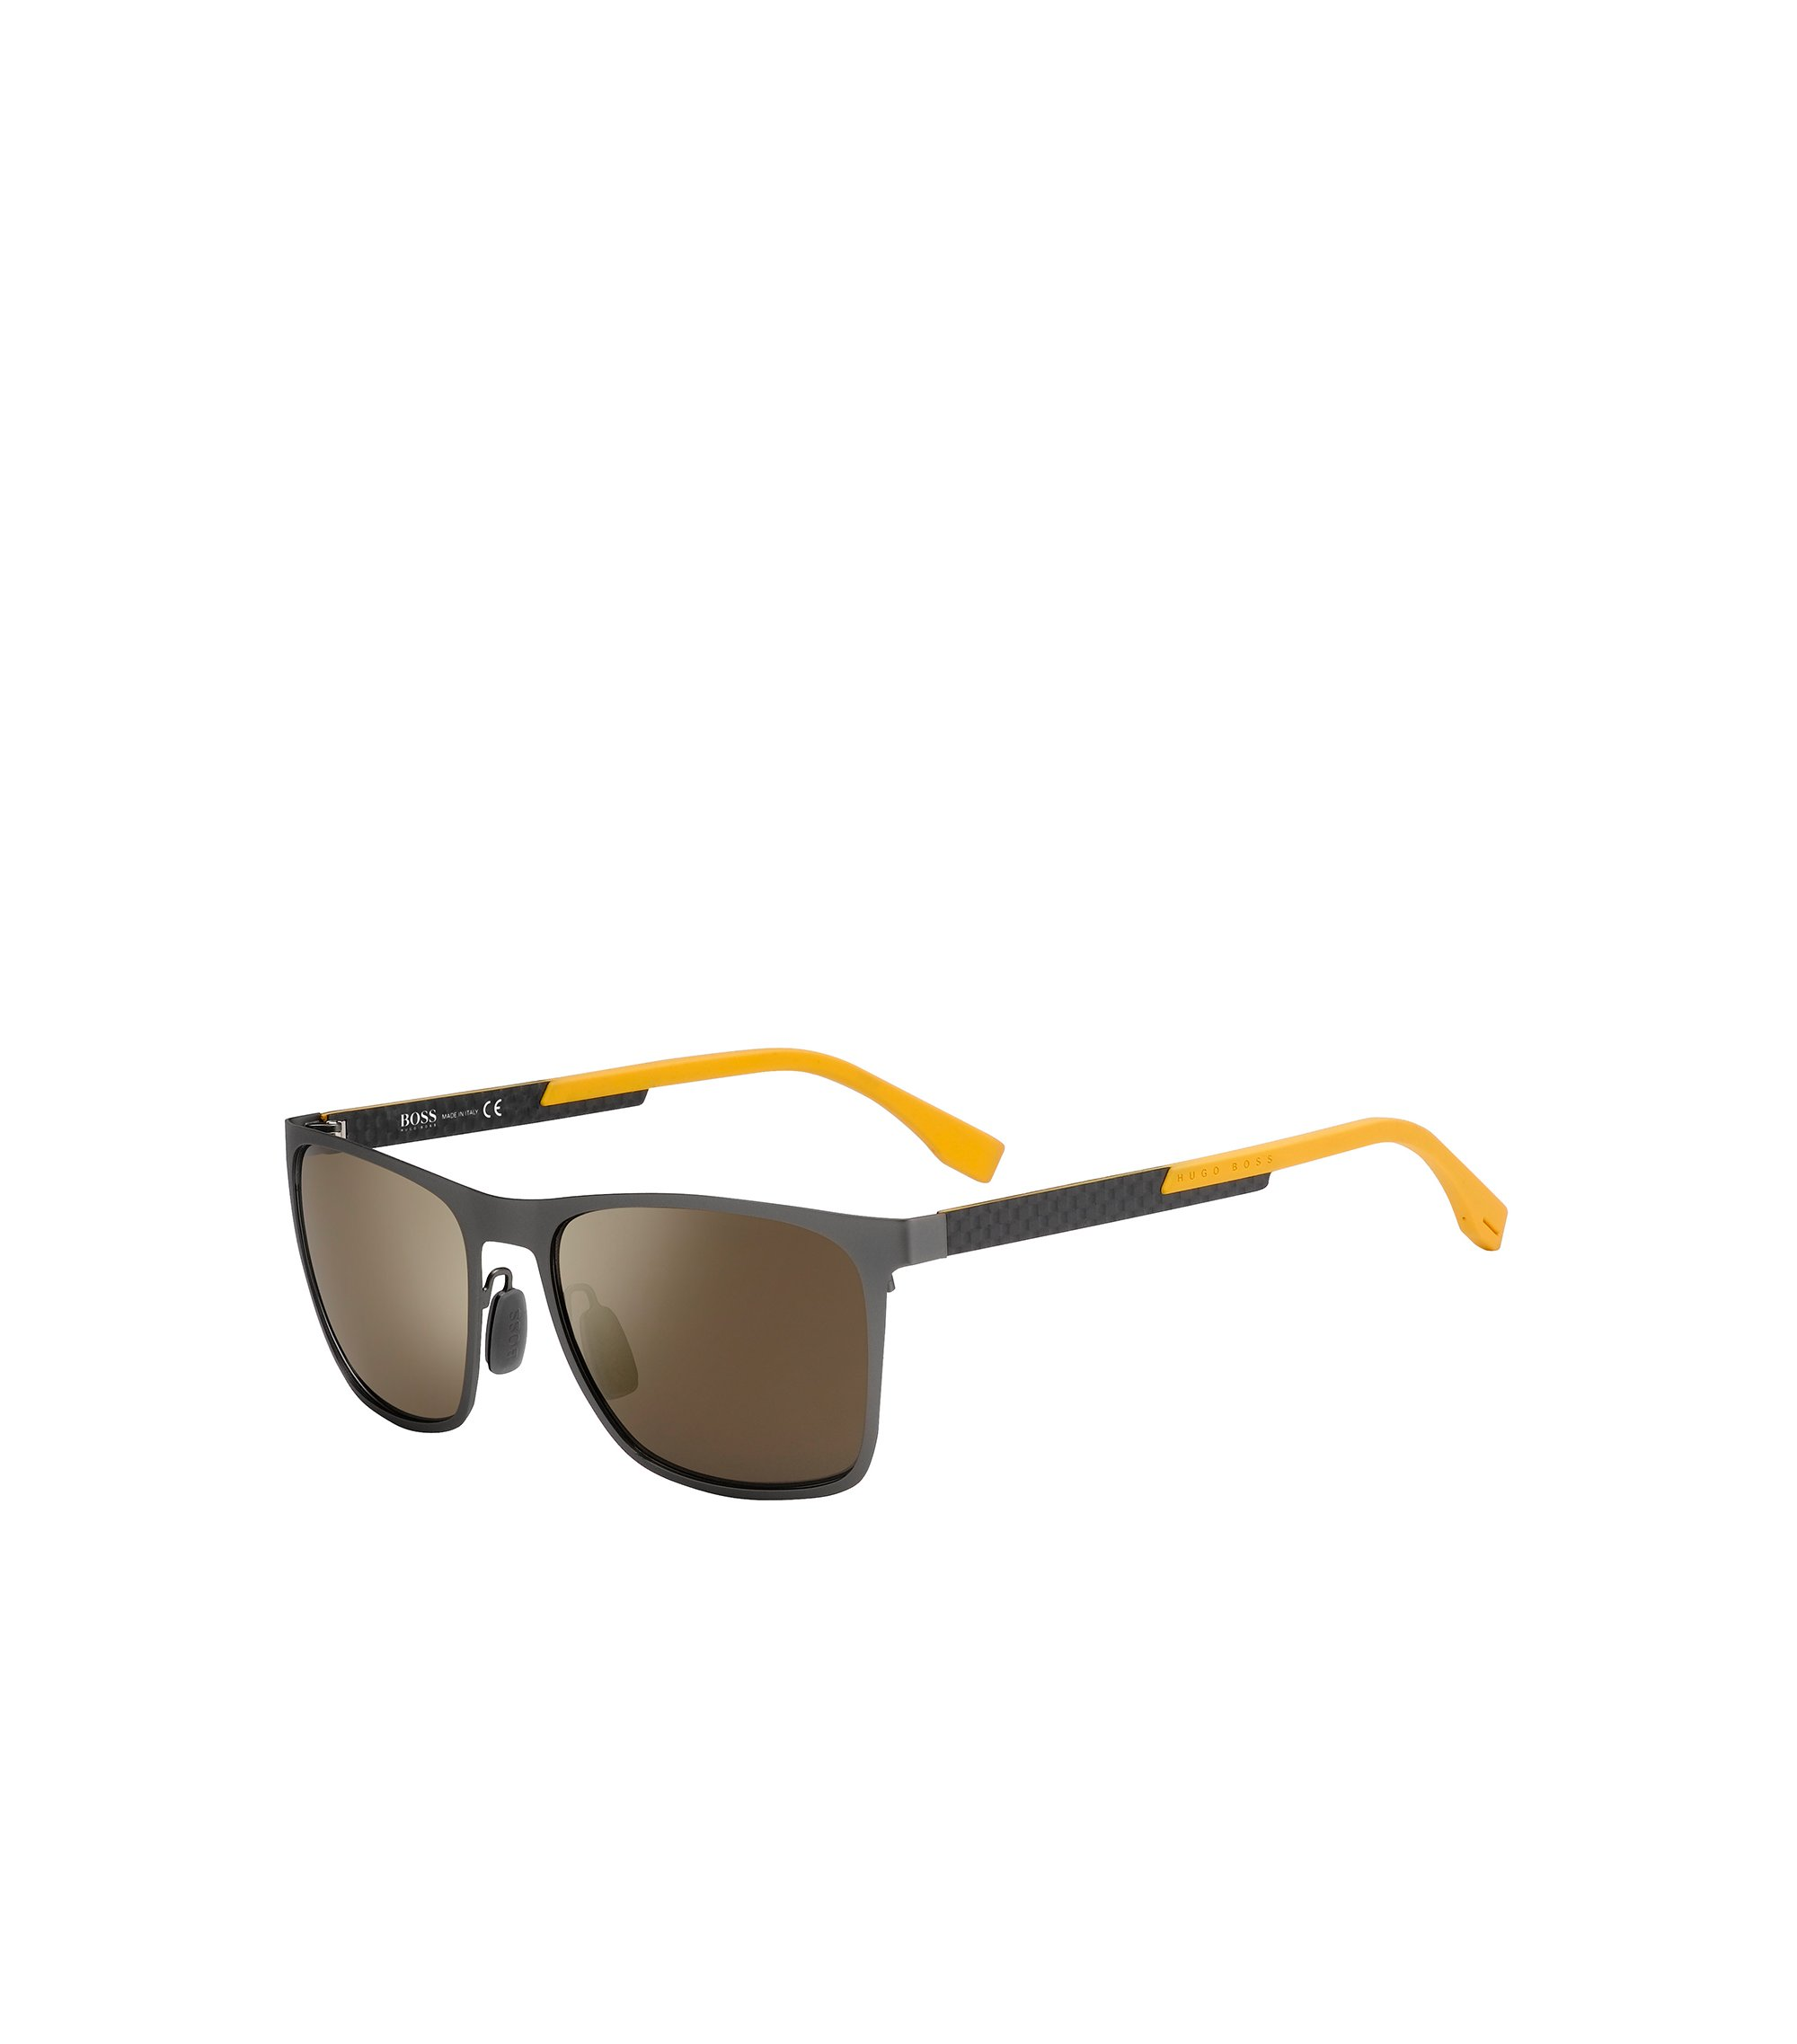 Gunmetal Flash Lens Rectangular Sunglasses | BOSS 0732S, Assorted-Pre-Pack